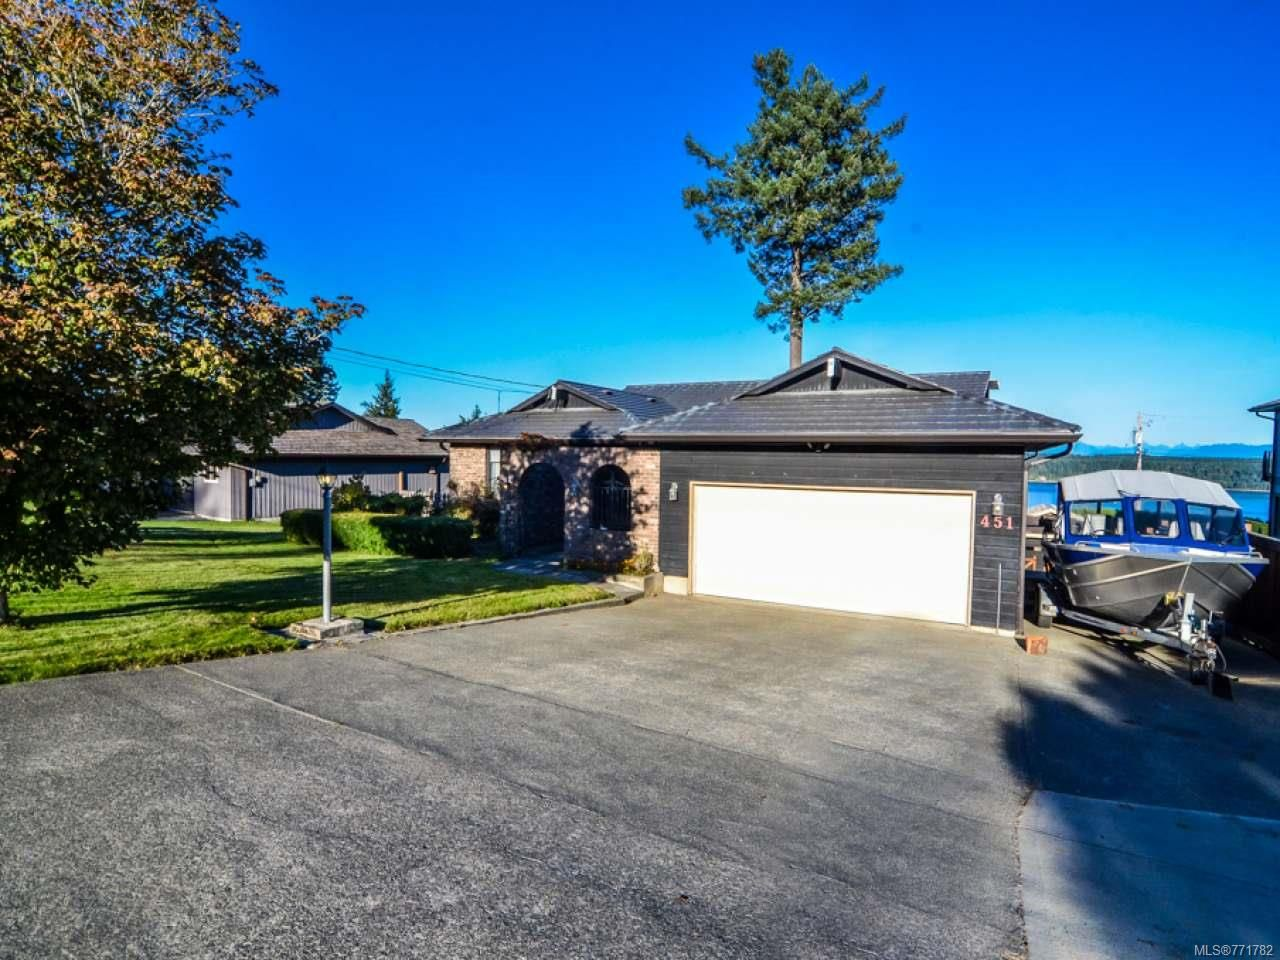 Photo 52: Photos: 451 S McLean St in CAMPBELL RIVER: CR Campbell River Central House for sale (Campbell River)  : MLS®# 771782